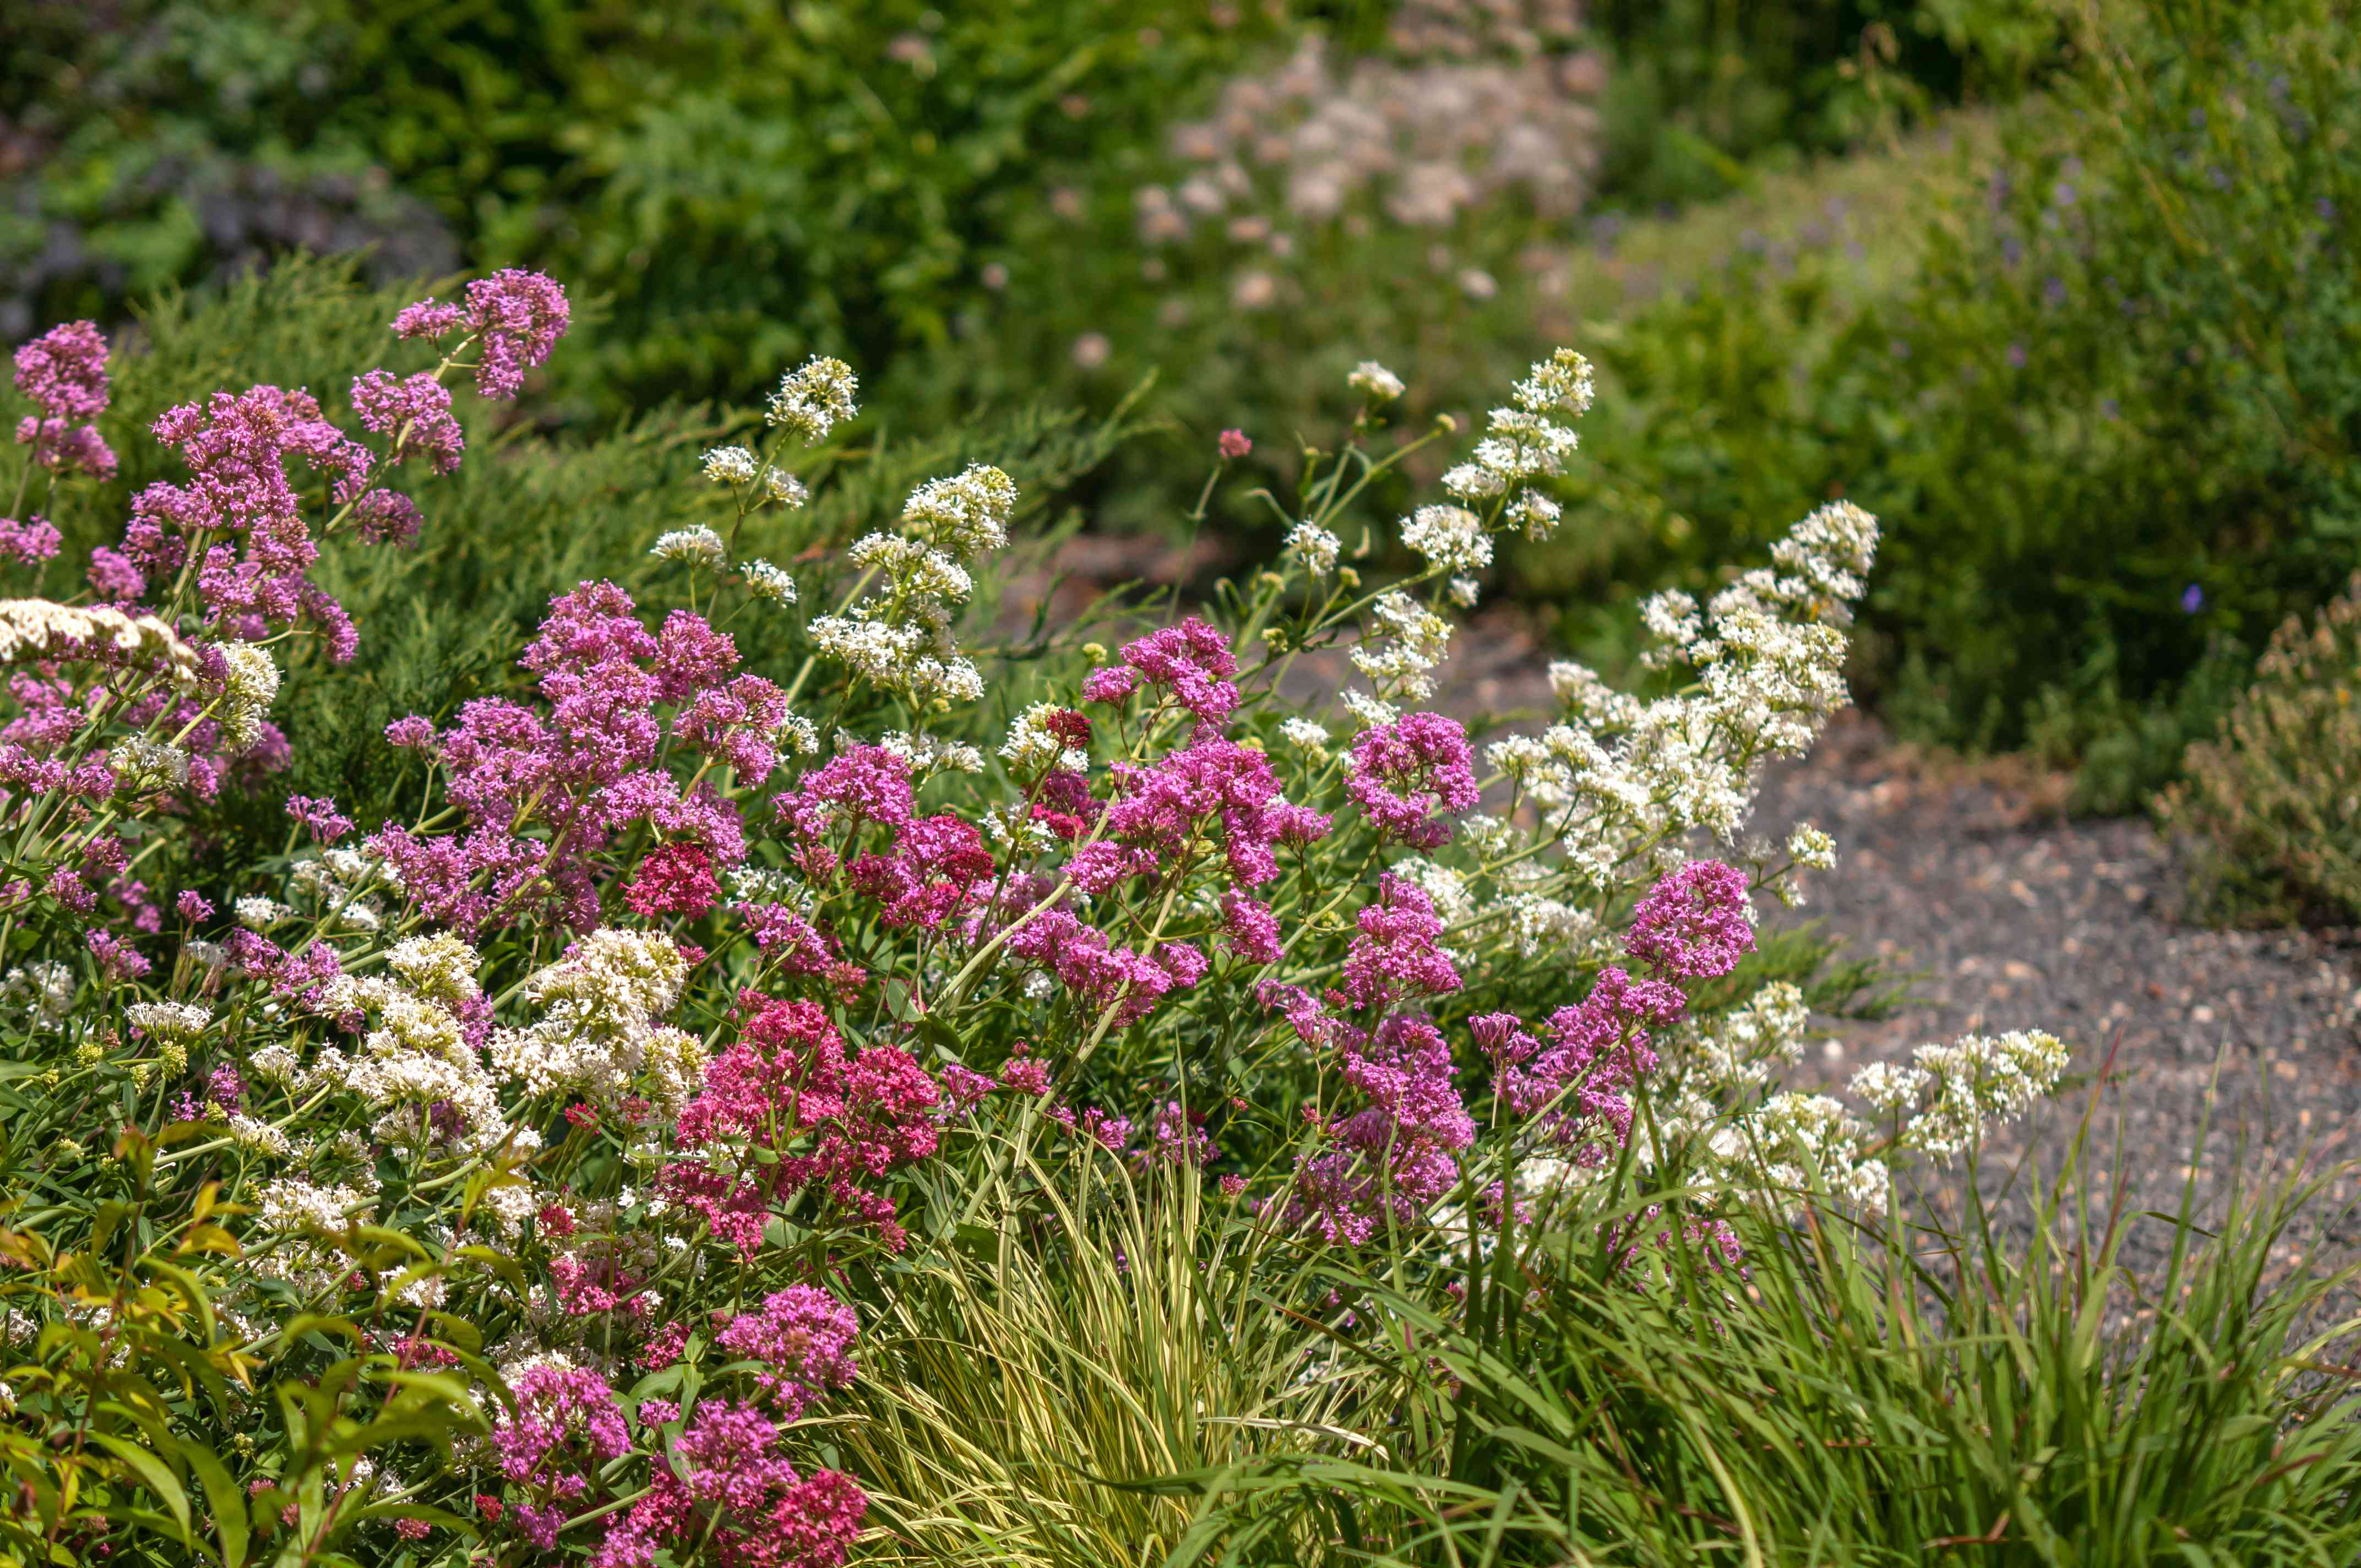 Red valerian with pink and white flowers leaning towards gravel edge